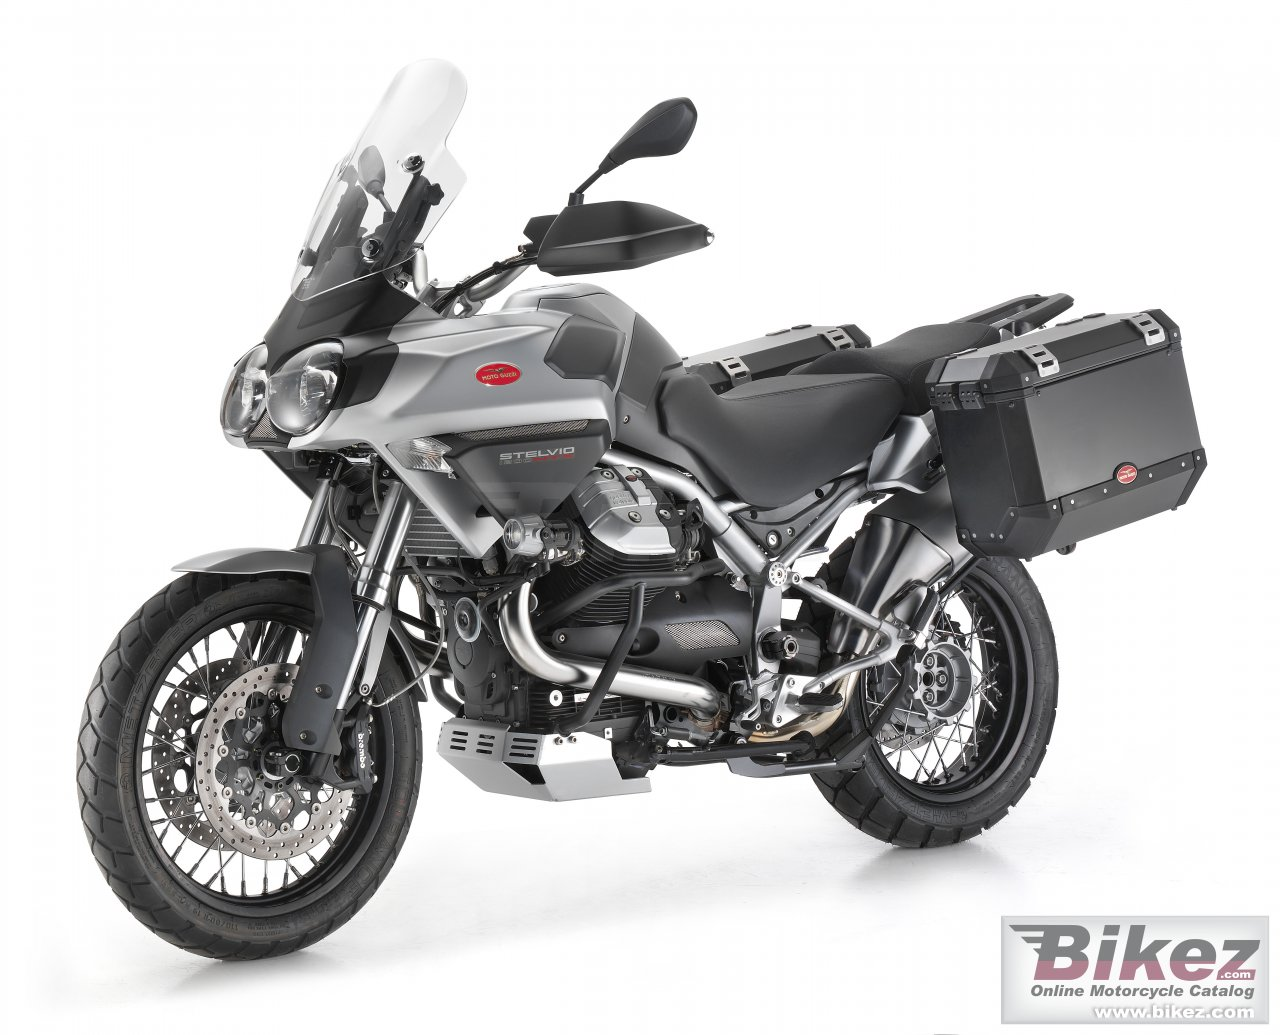 Big Moto Guzzi stelvio 1200cc ntx 4v picture and wallpaper from Bikez.com